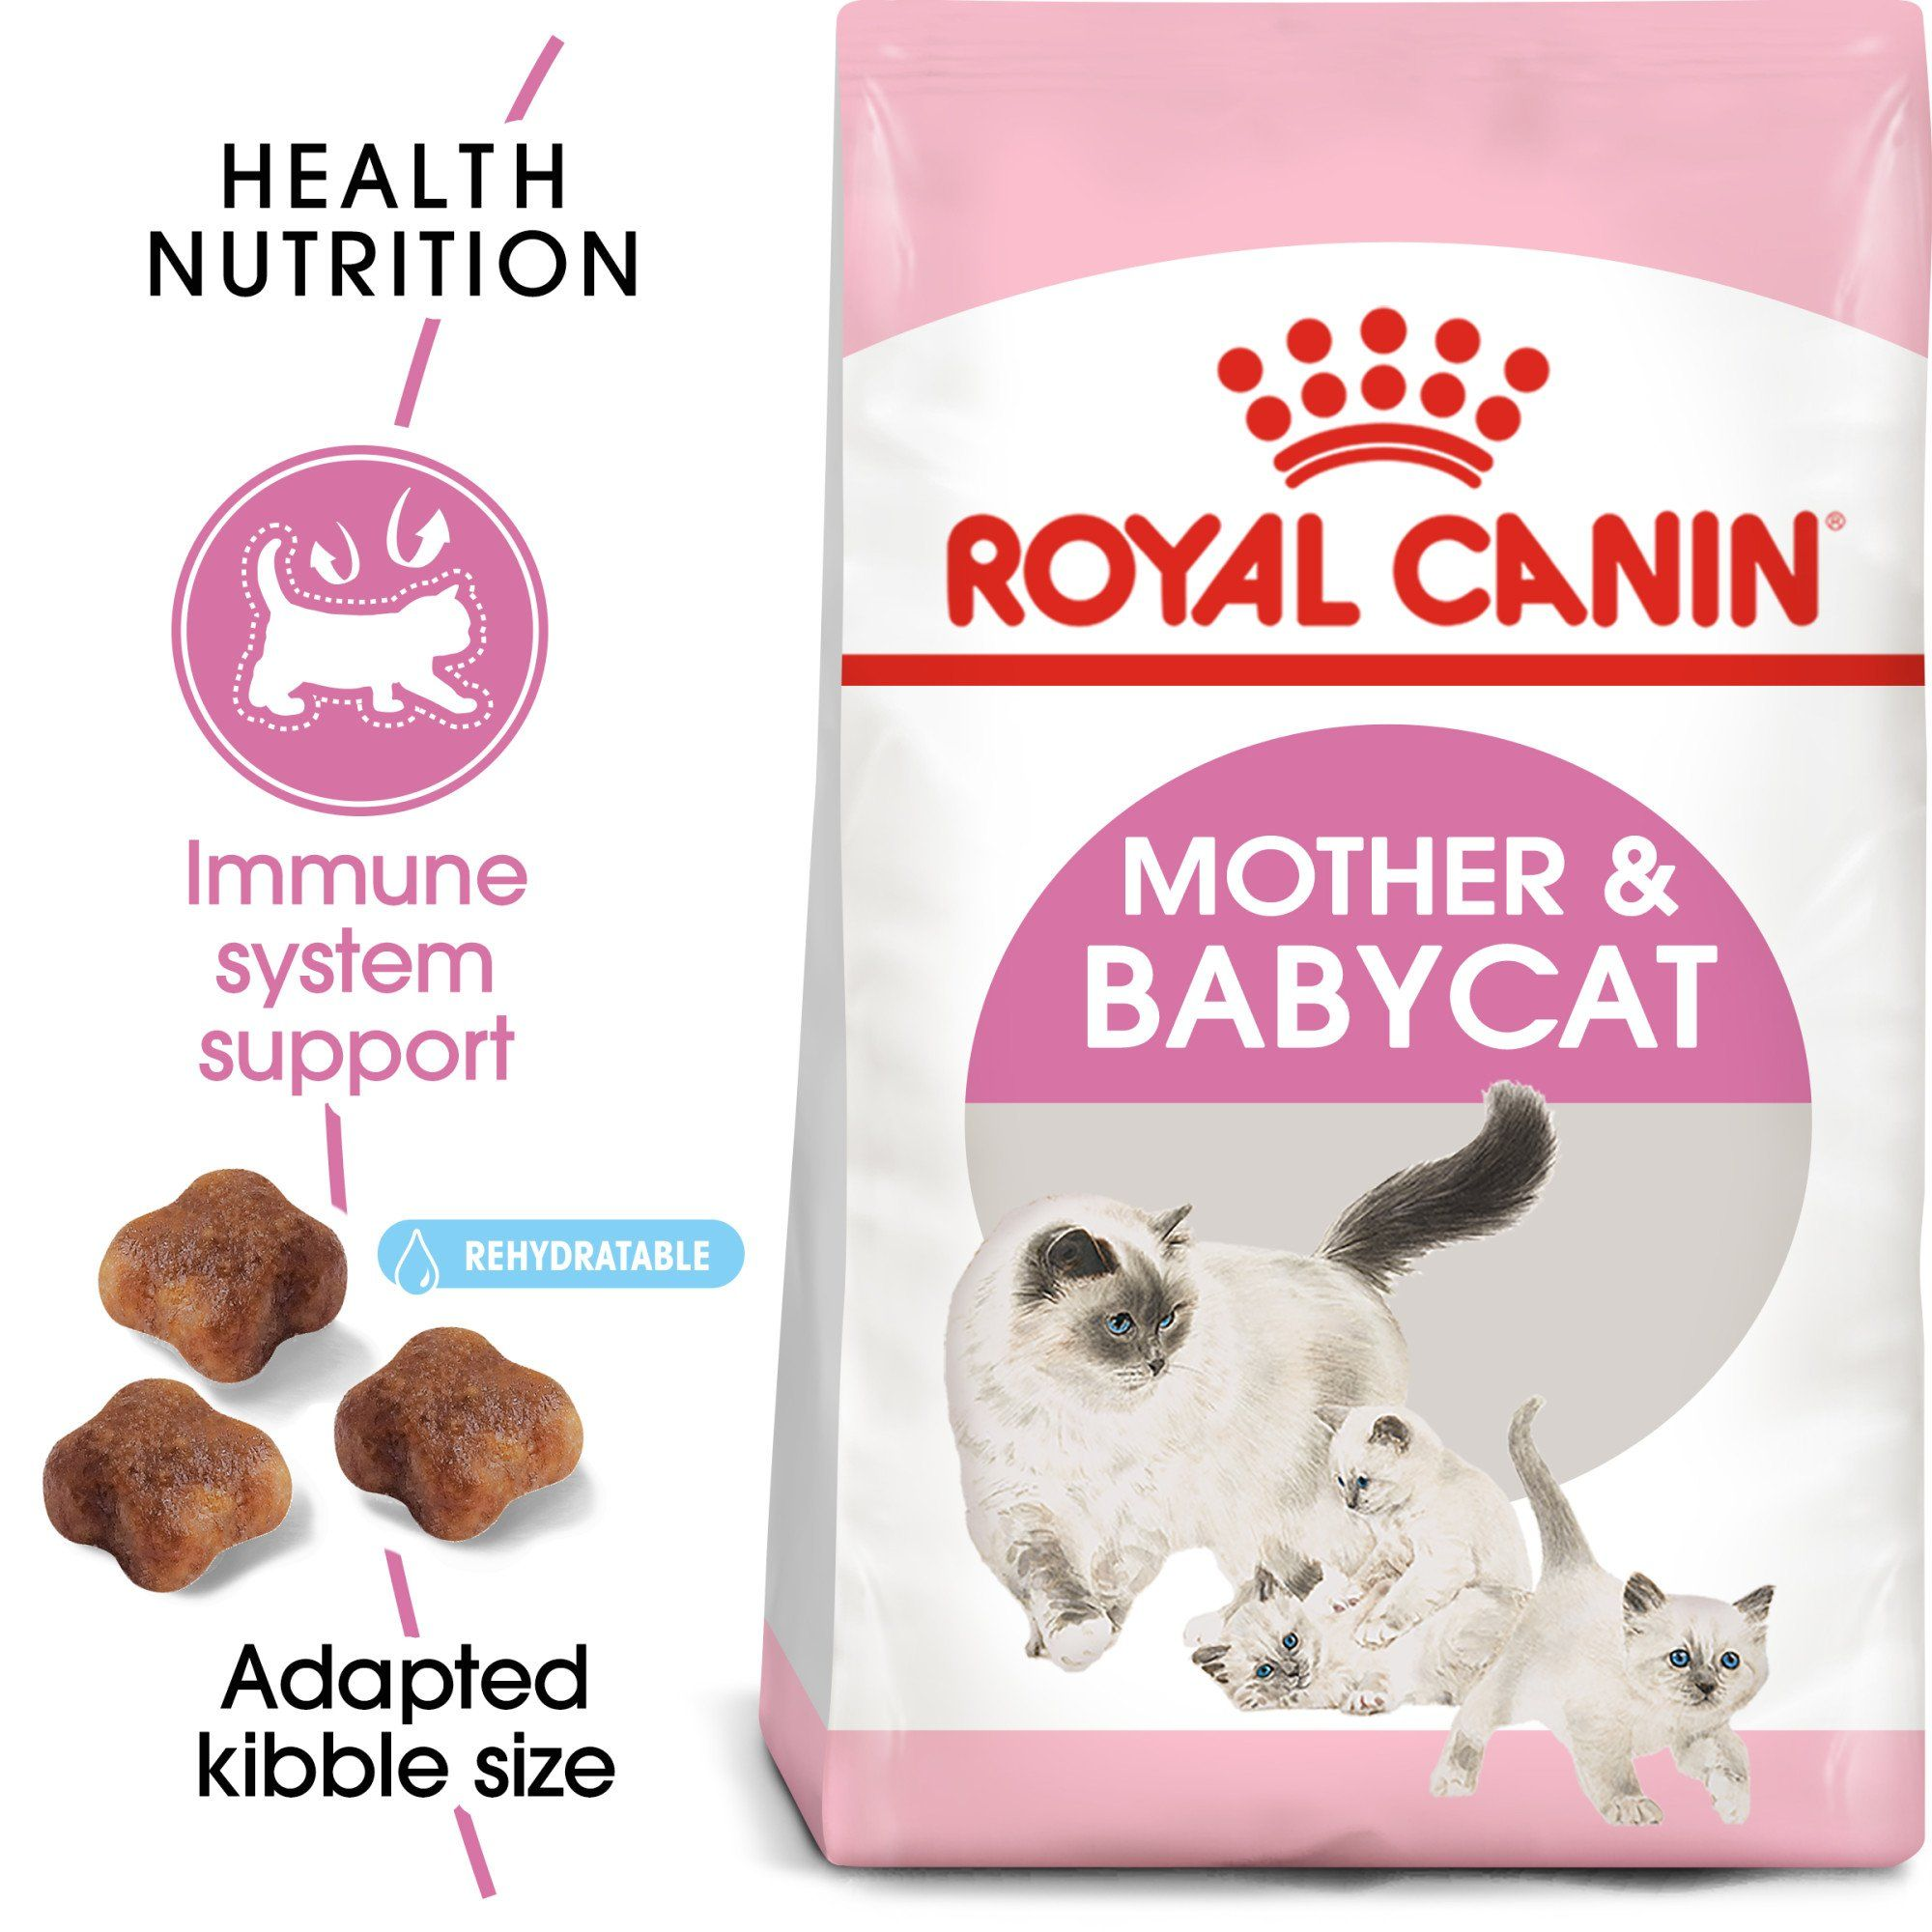 Royal Canin Mother Babycat Dry Cat Food For Newborn Kittens And Pregnant Or Nursing Cats 7 Lbs Dry Cat Food Cat Nutrition Newborn Kittens